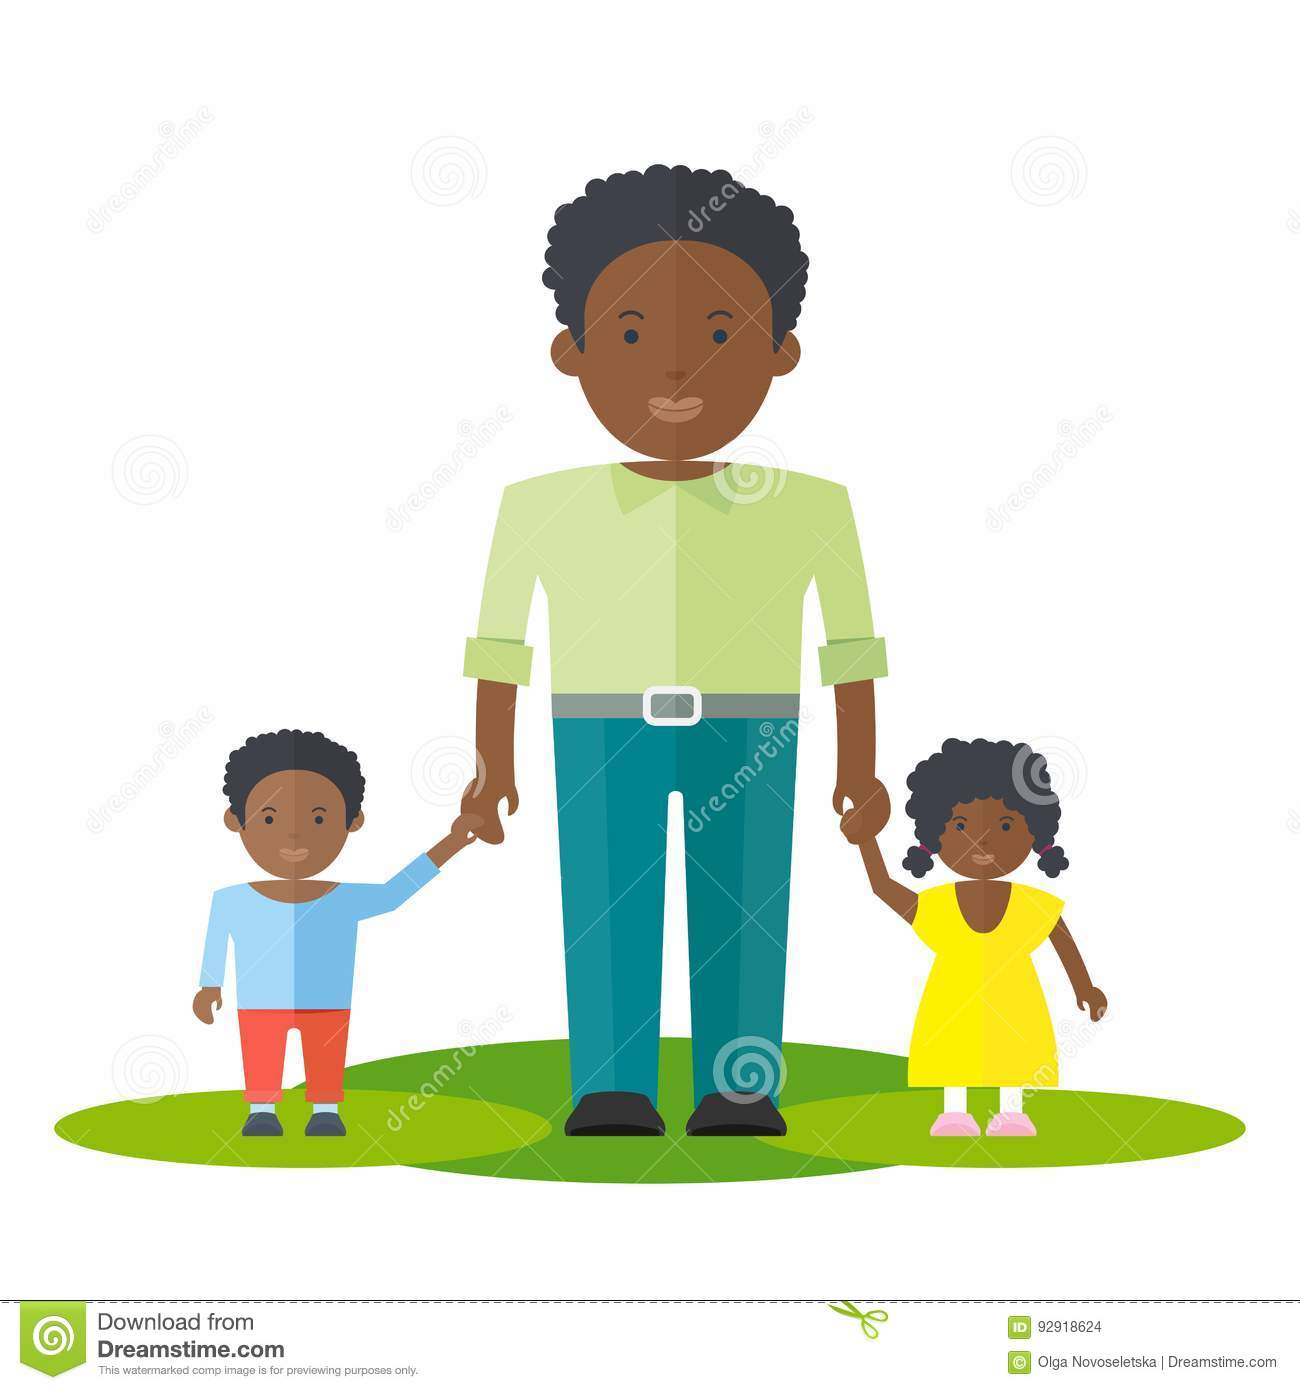 Black father with kids clipart image royalty free stock Black Father And Son Clipart image royalty free stock